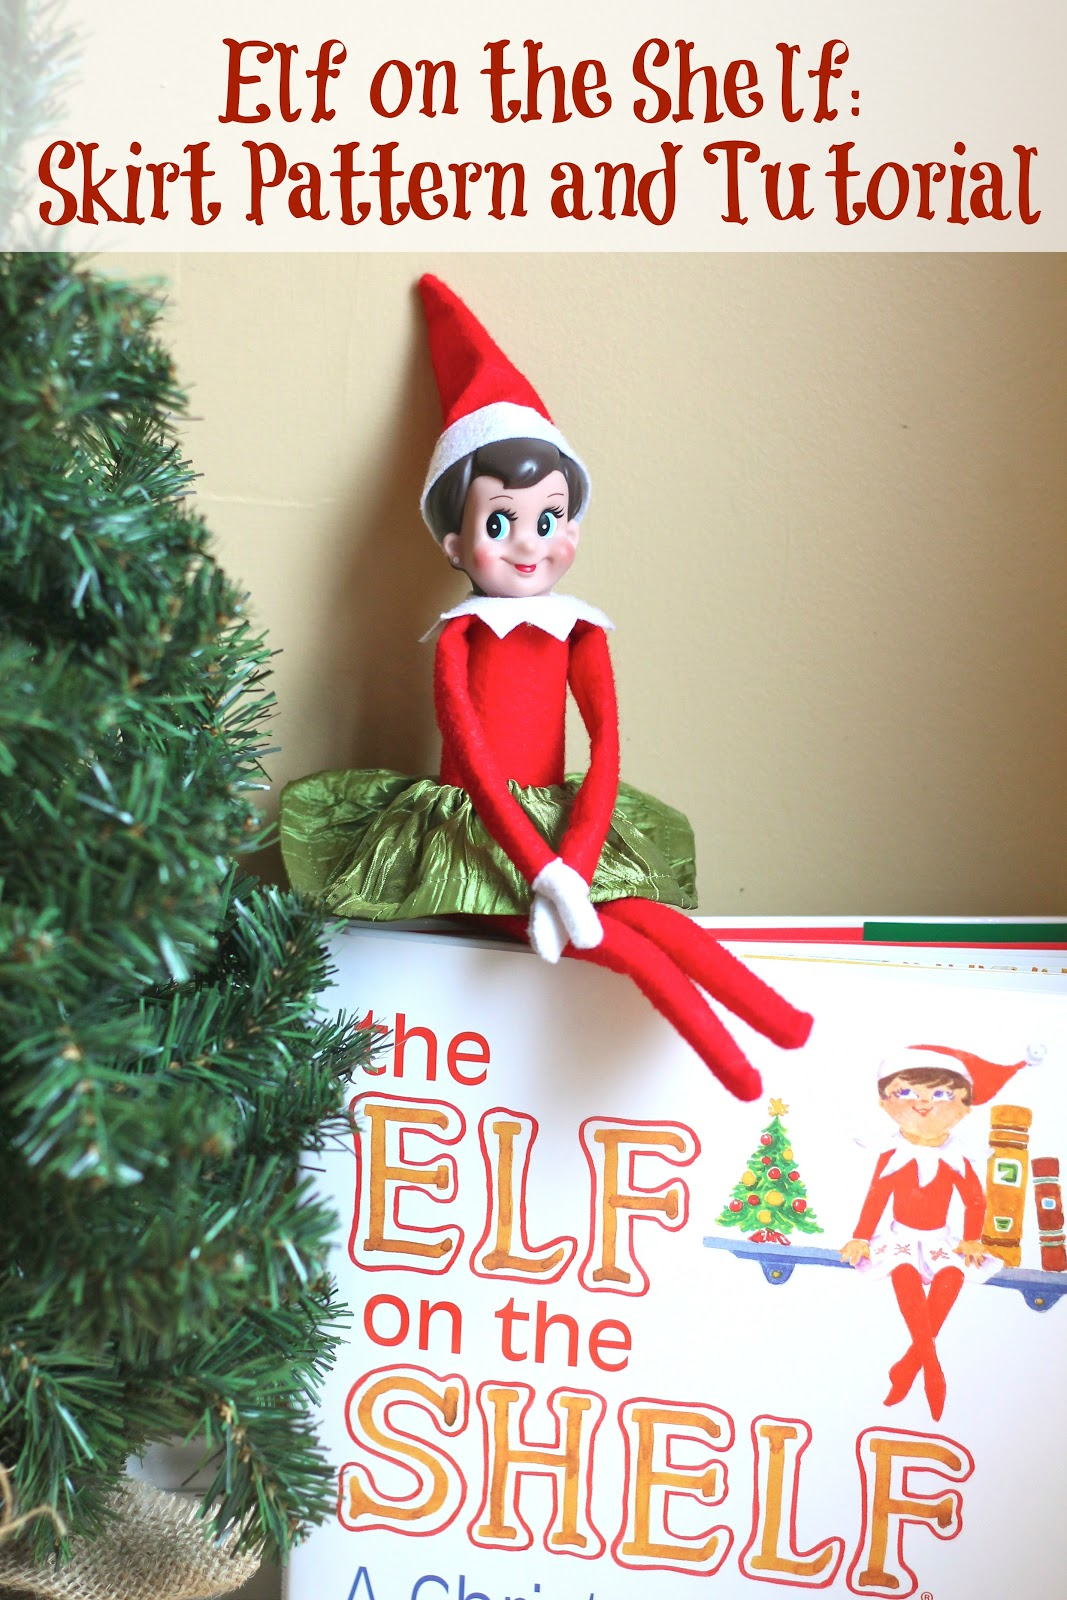 elf on the shelf skirt pattern and tutorial welcometothemousehouse free printable opening coloring pages Free Printable Elf Pattern